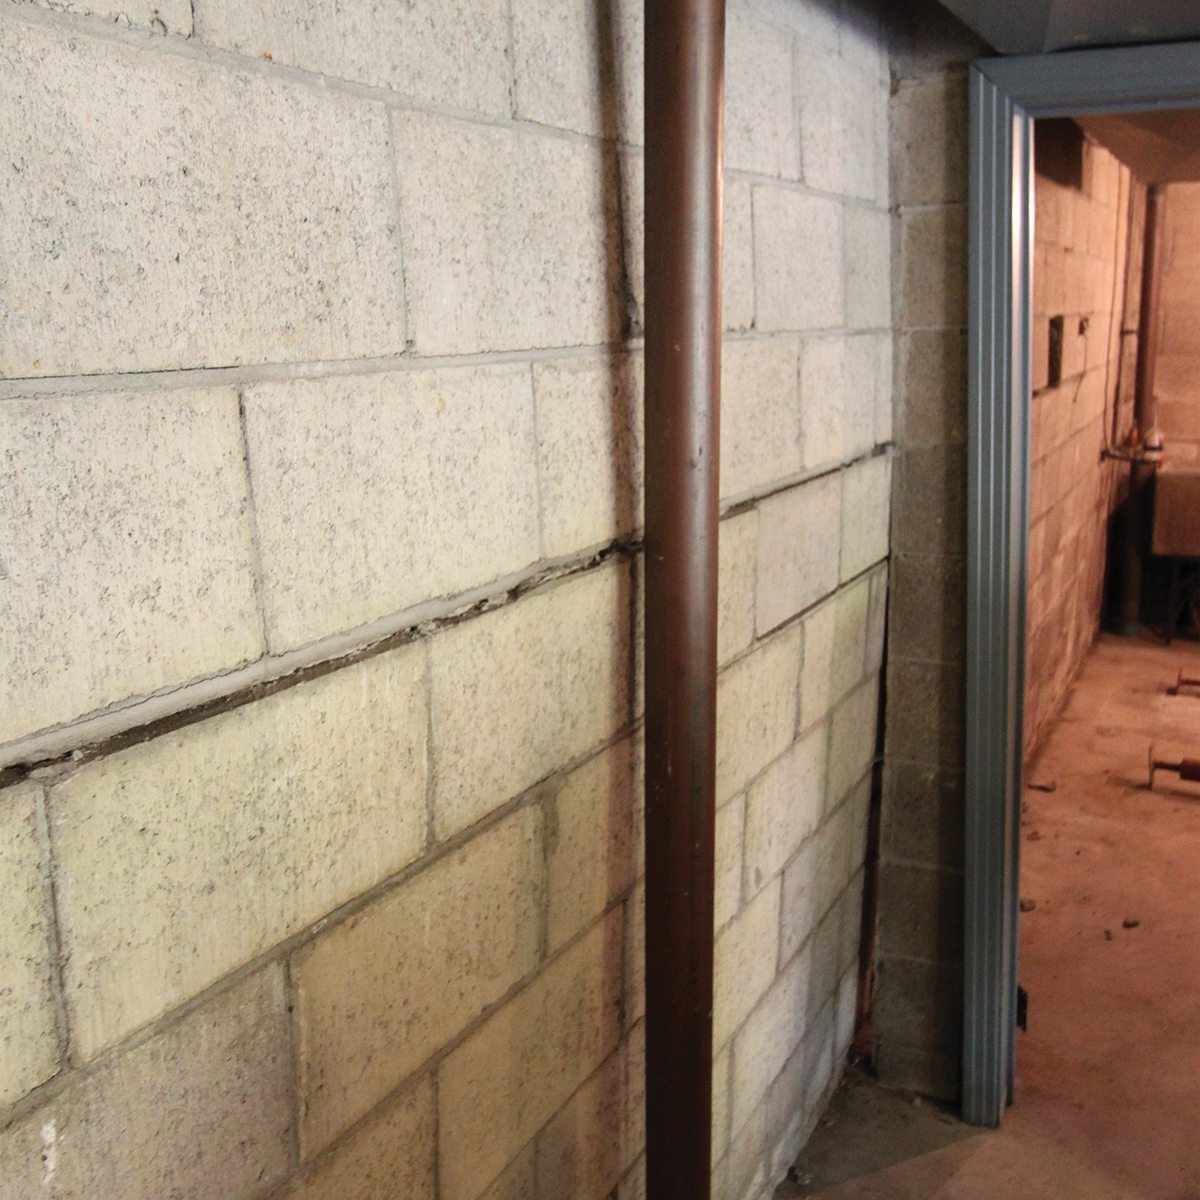 Bowing Basement Walls : bowed basement walls  - Aeropaca.Org